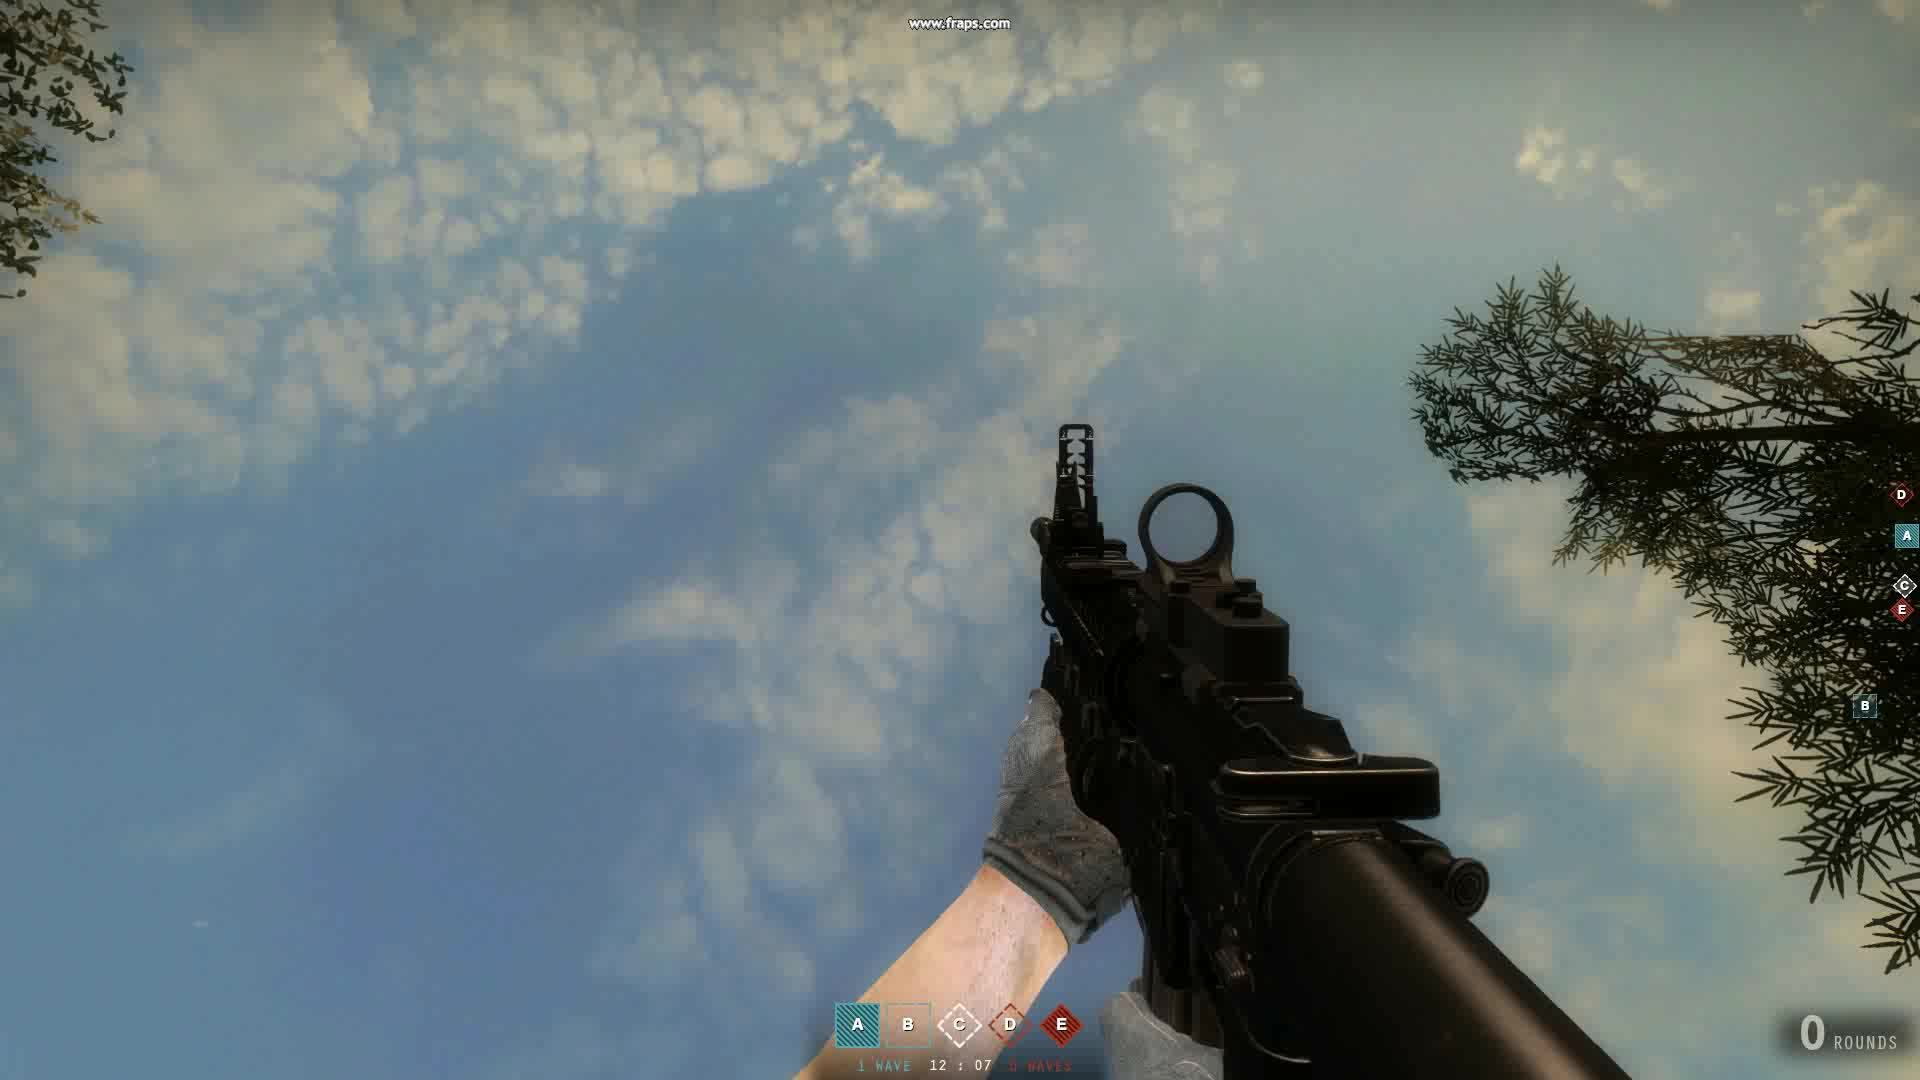 insurgency, PSA: The skybox has been removed. You can now mortar 40mm grenades. (reddit) GIFs